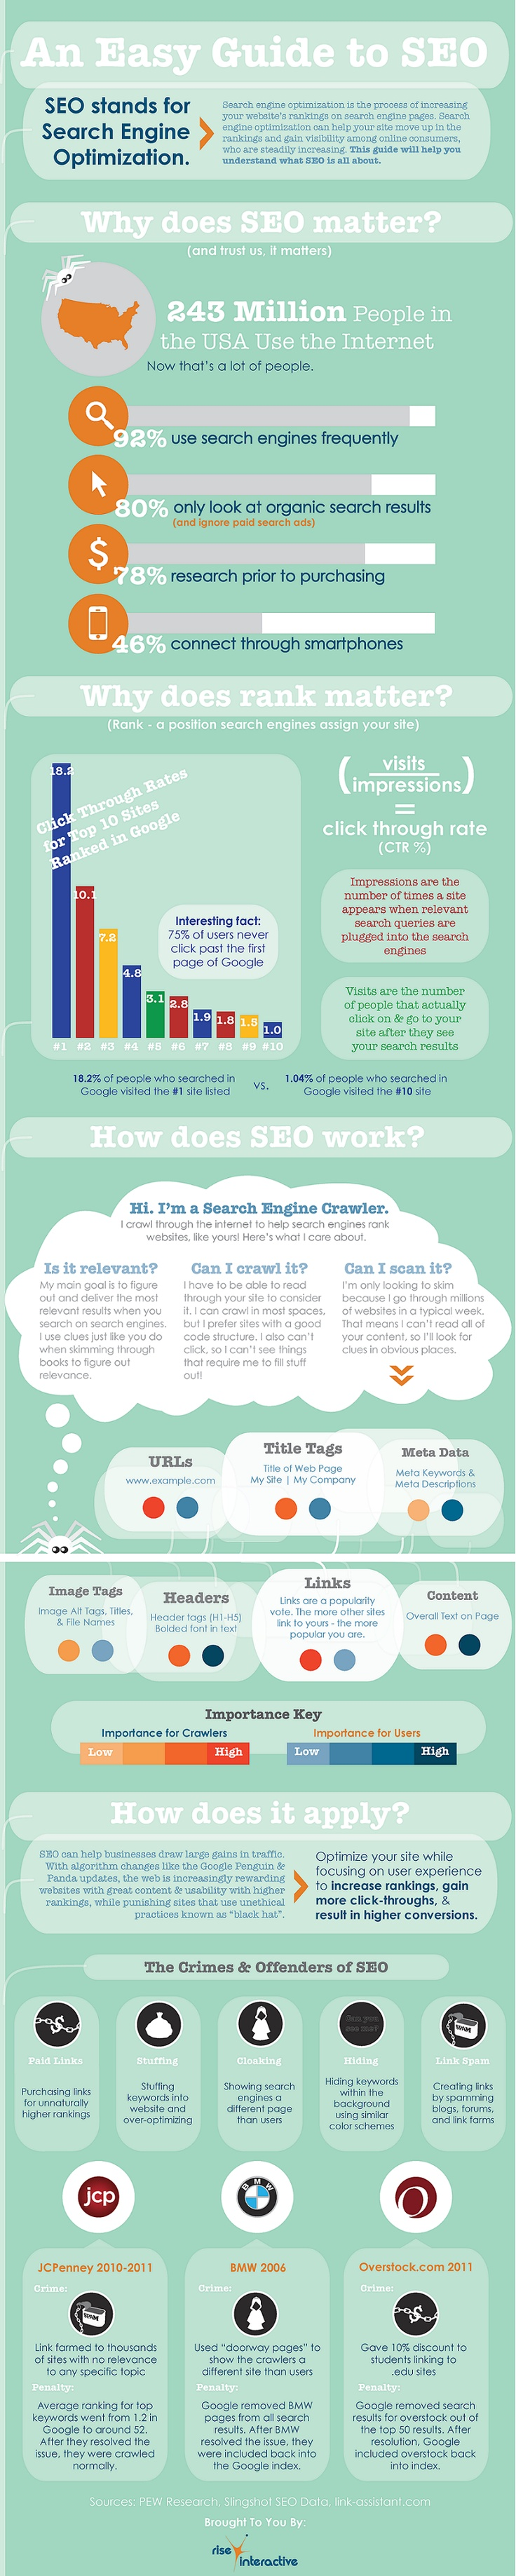 Rise Interactive: An Easy Guide to SEO #Infographic